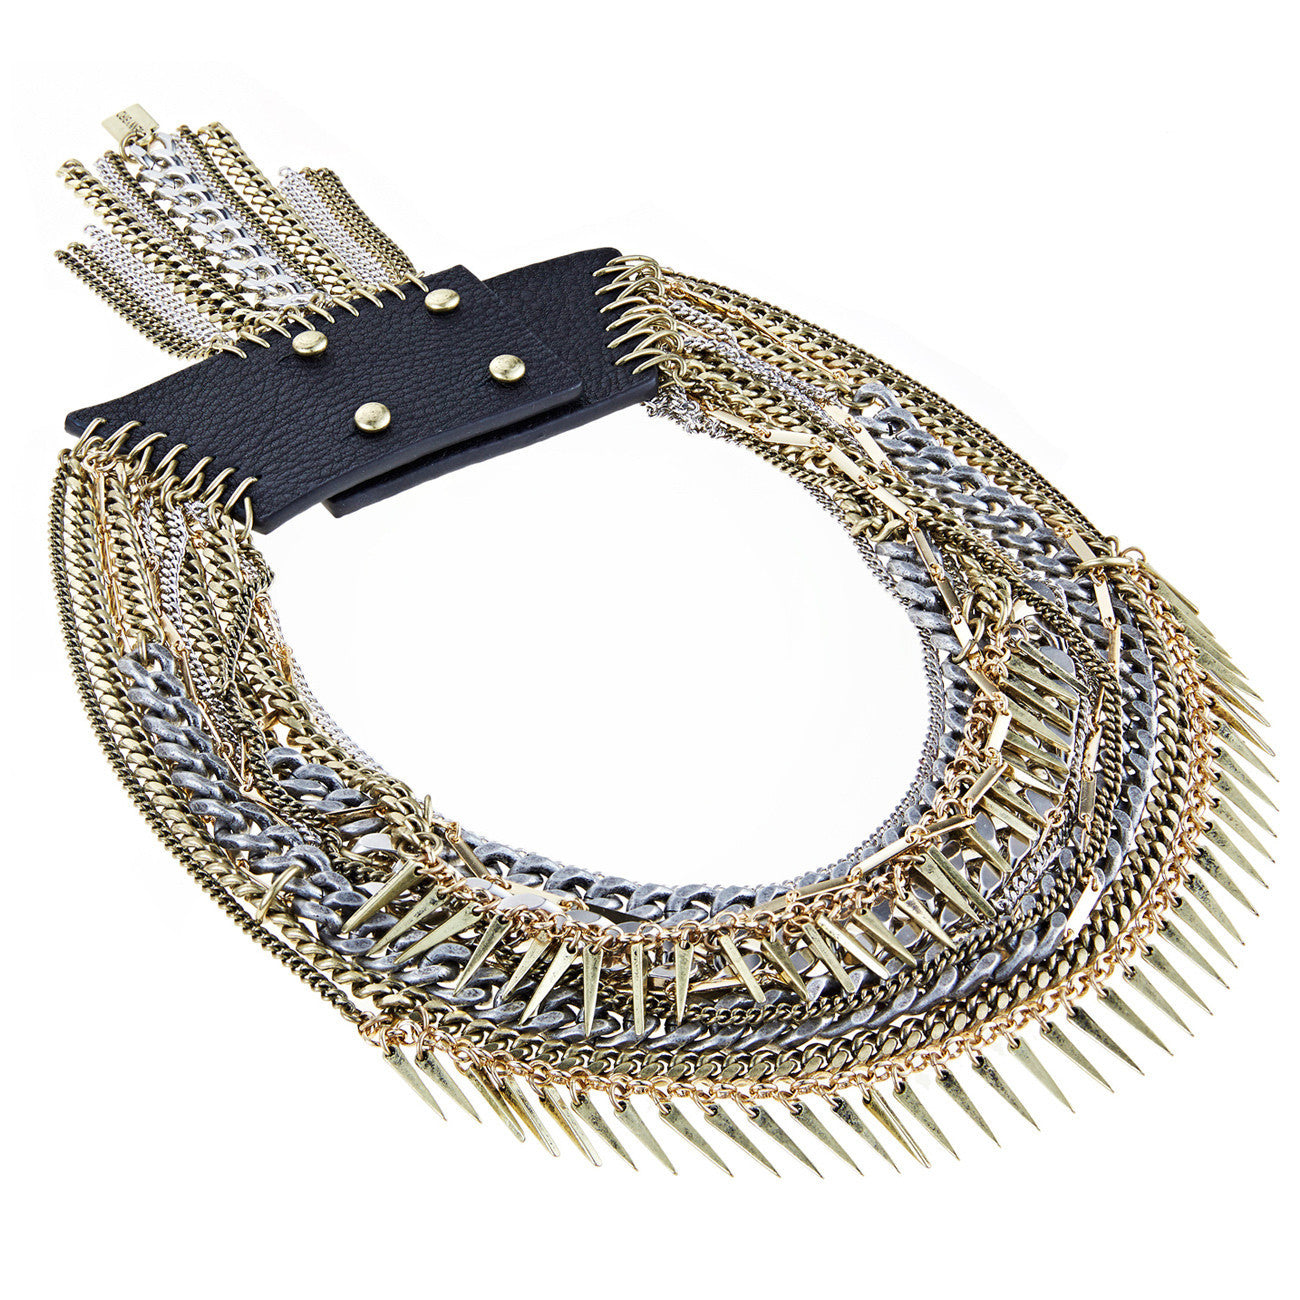 Artemis Collar in Mixed Metal and Leather by Jenny Bird